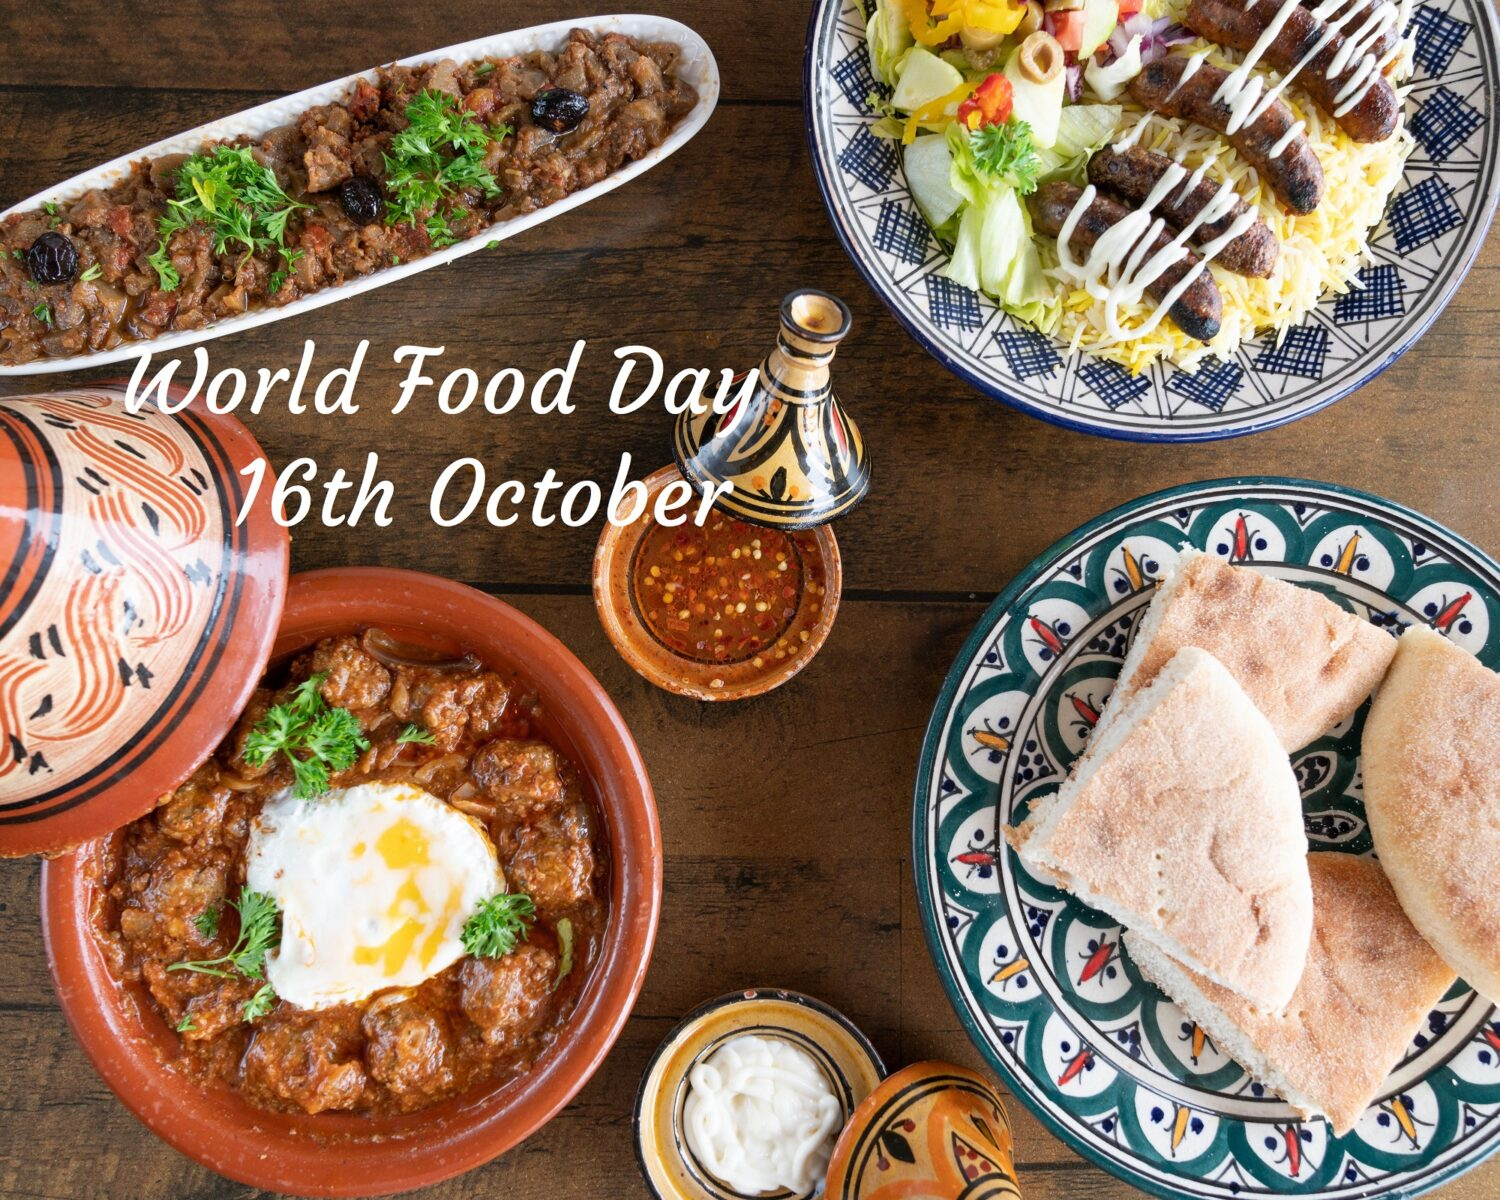 Moroccan food on table, World food Day